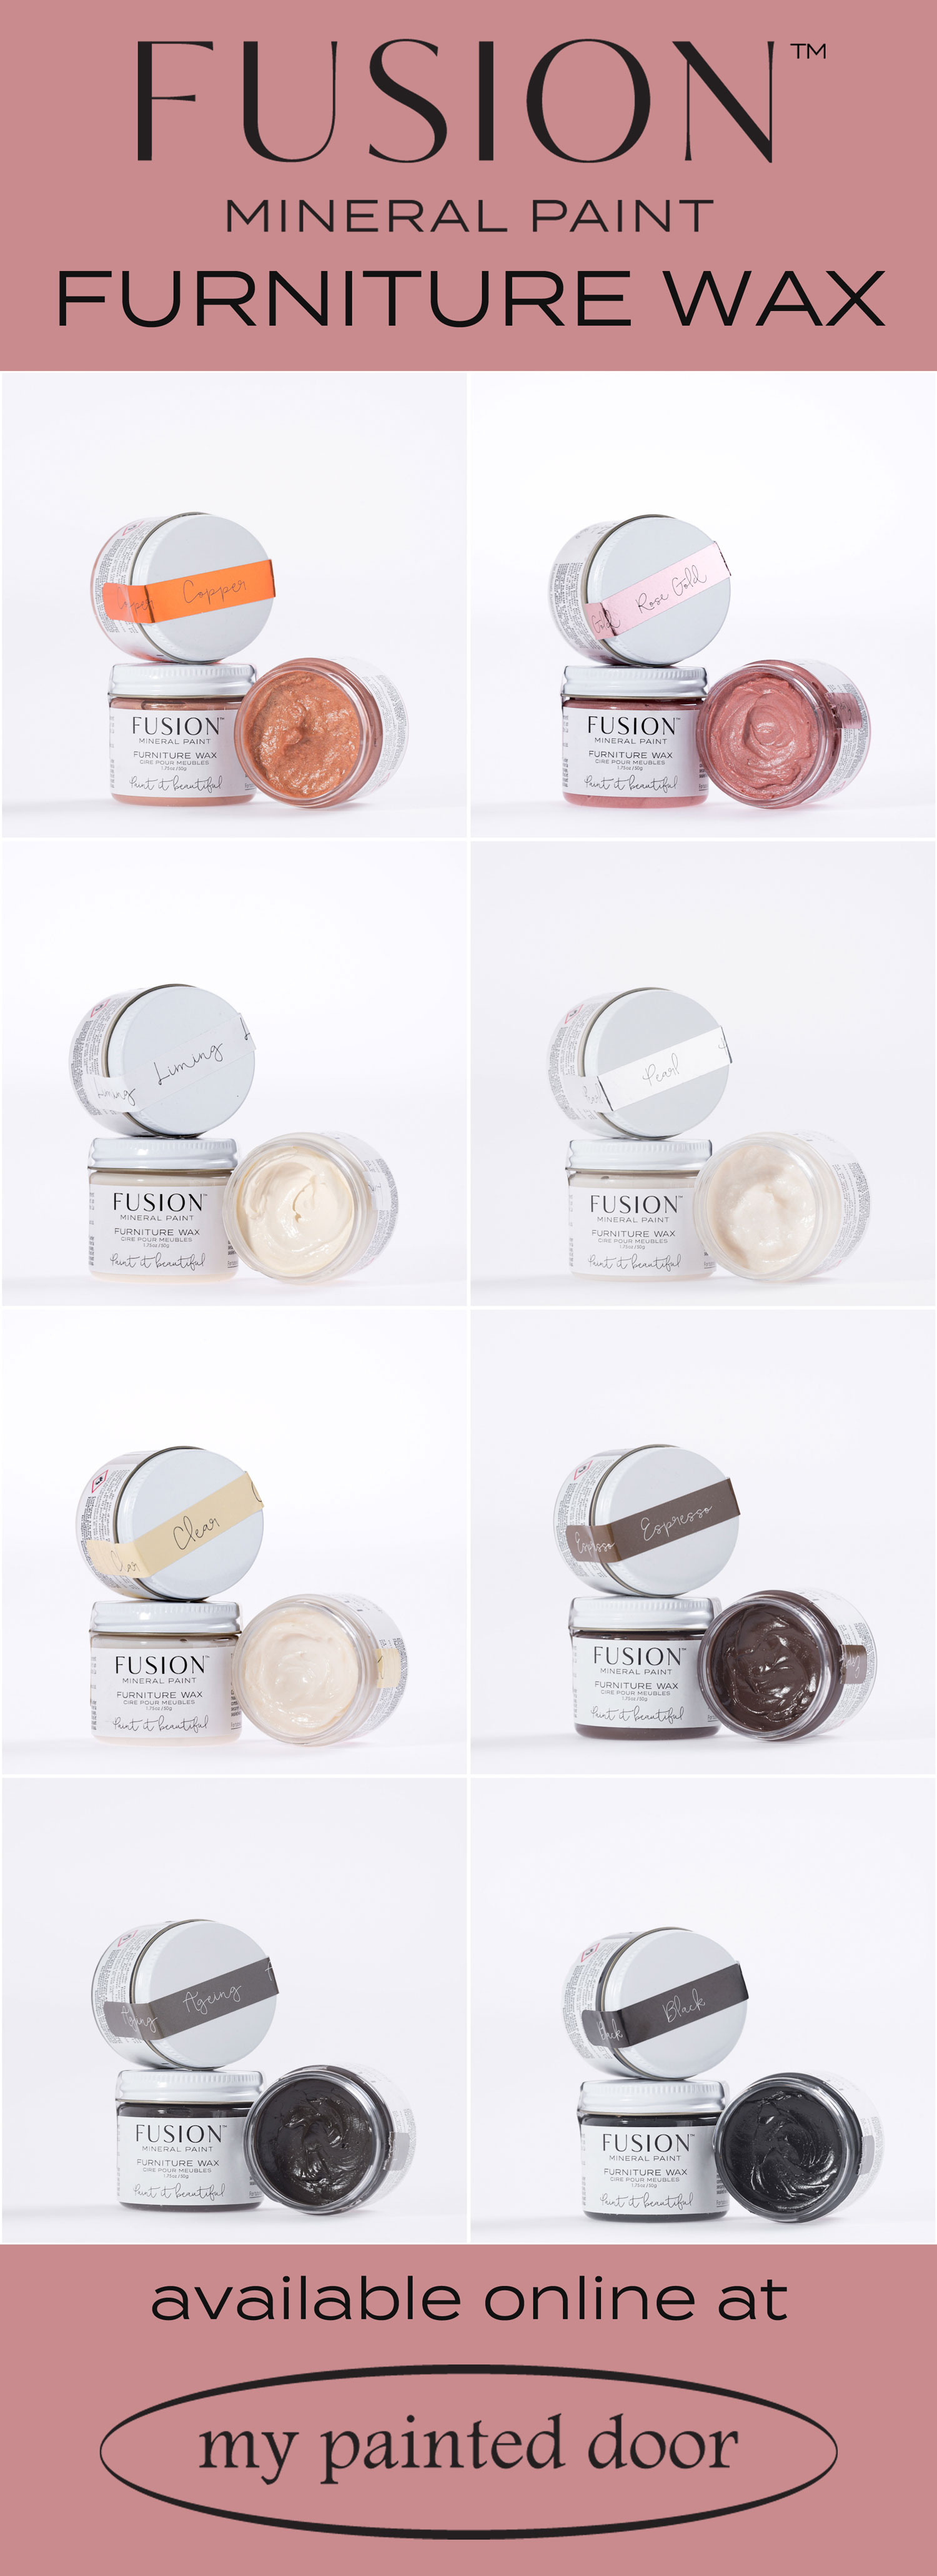 Fusion Mineral Paint Furniture Wax available online at My Painted Door. Colours include Copper, Rose Gold, Liming, Pearl, Clear, Espresso, Ageing and Black.